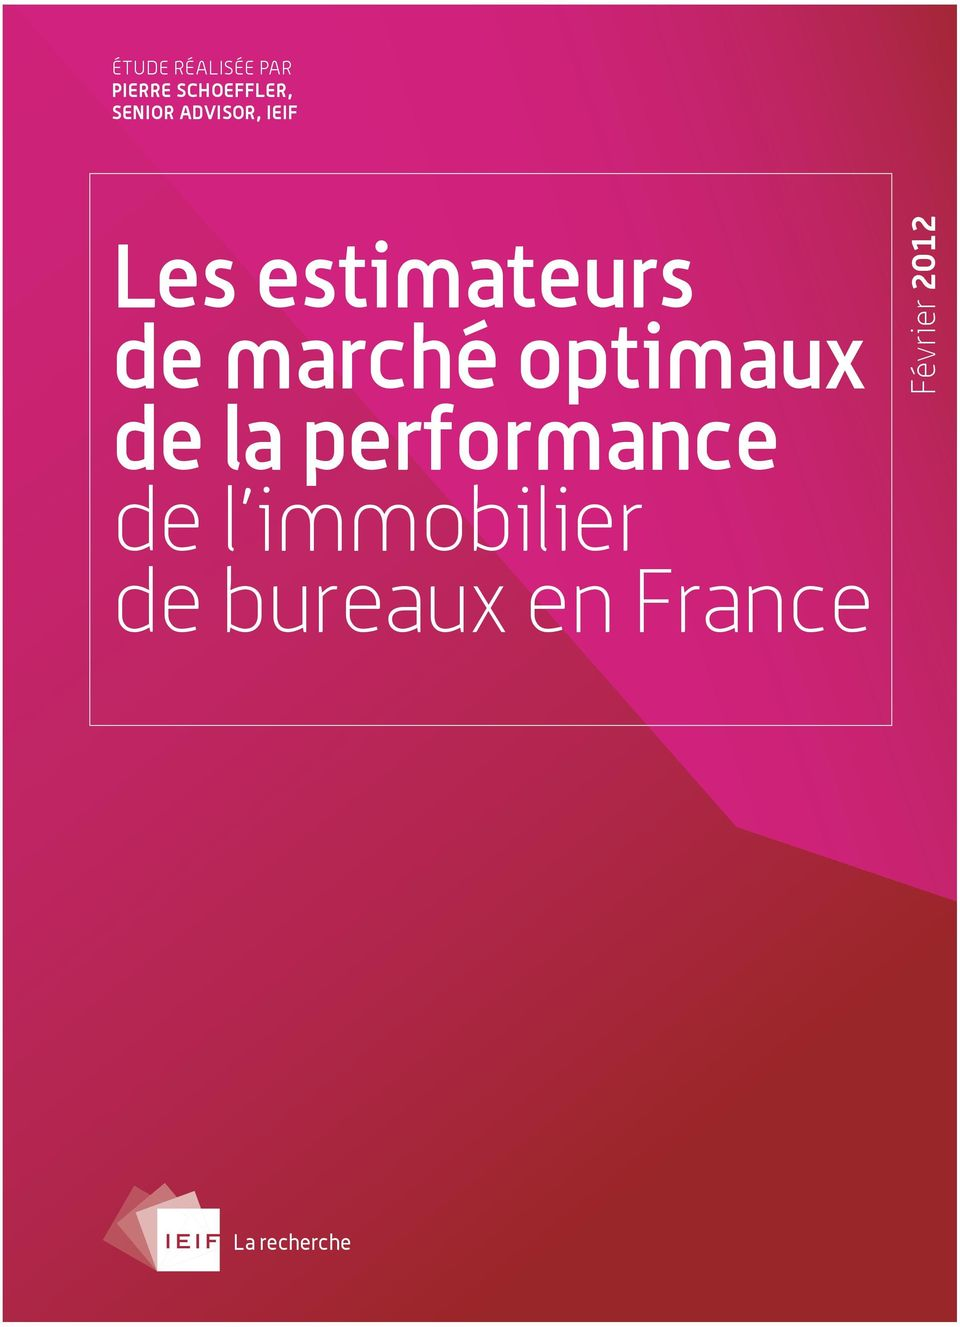 marché optimaux de la performance de l